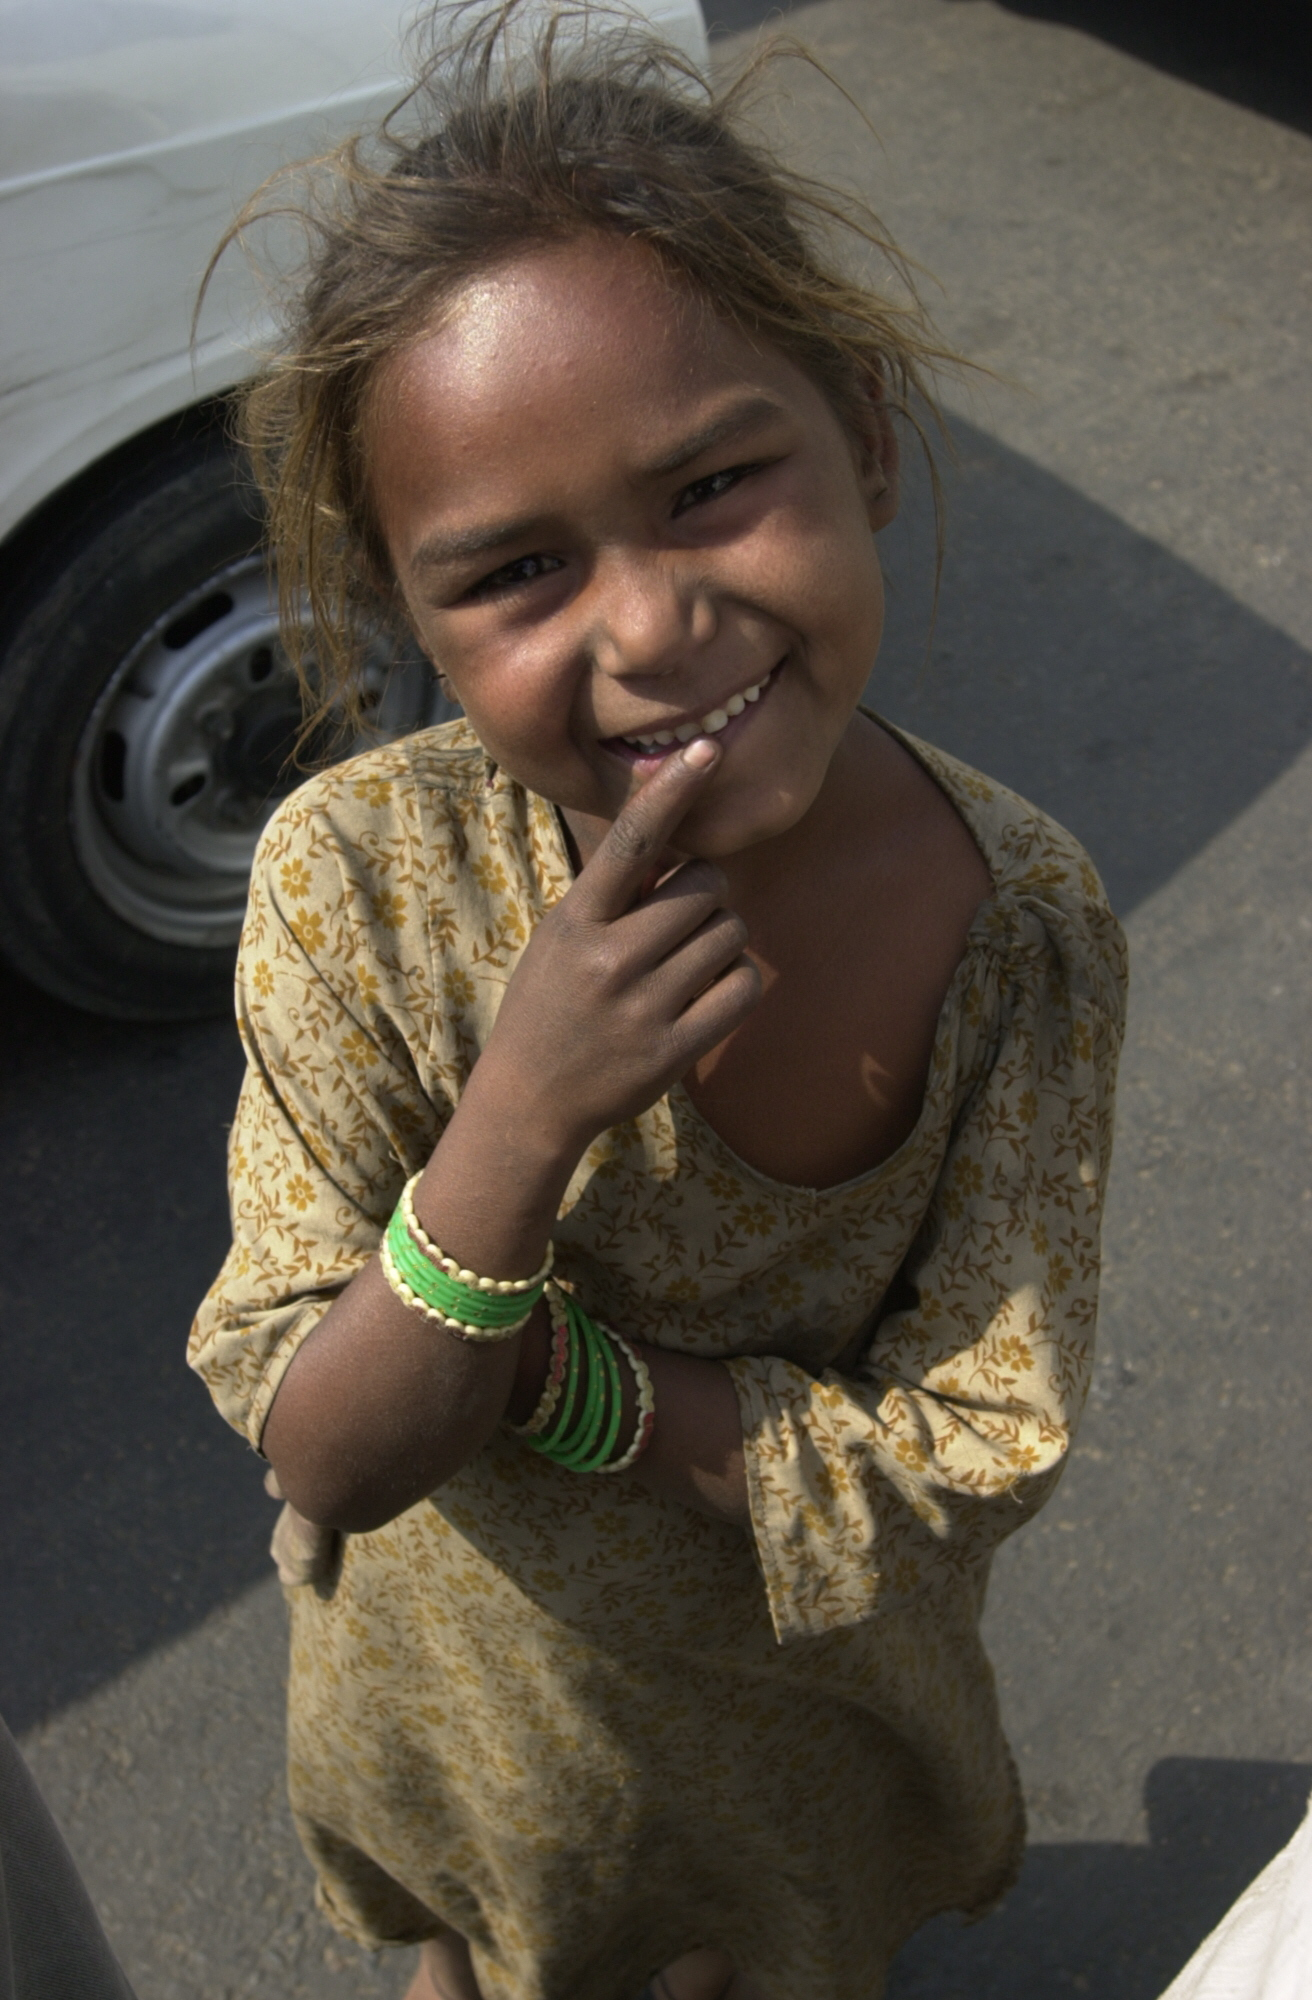 http://philip.greenspun.com/images/200103-d1-delhi/red-fort-beggar-girl.jpg